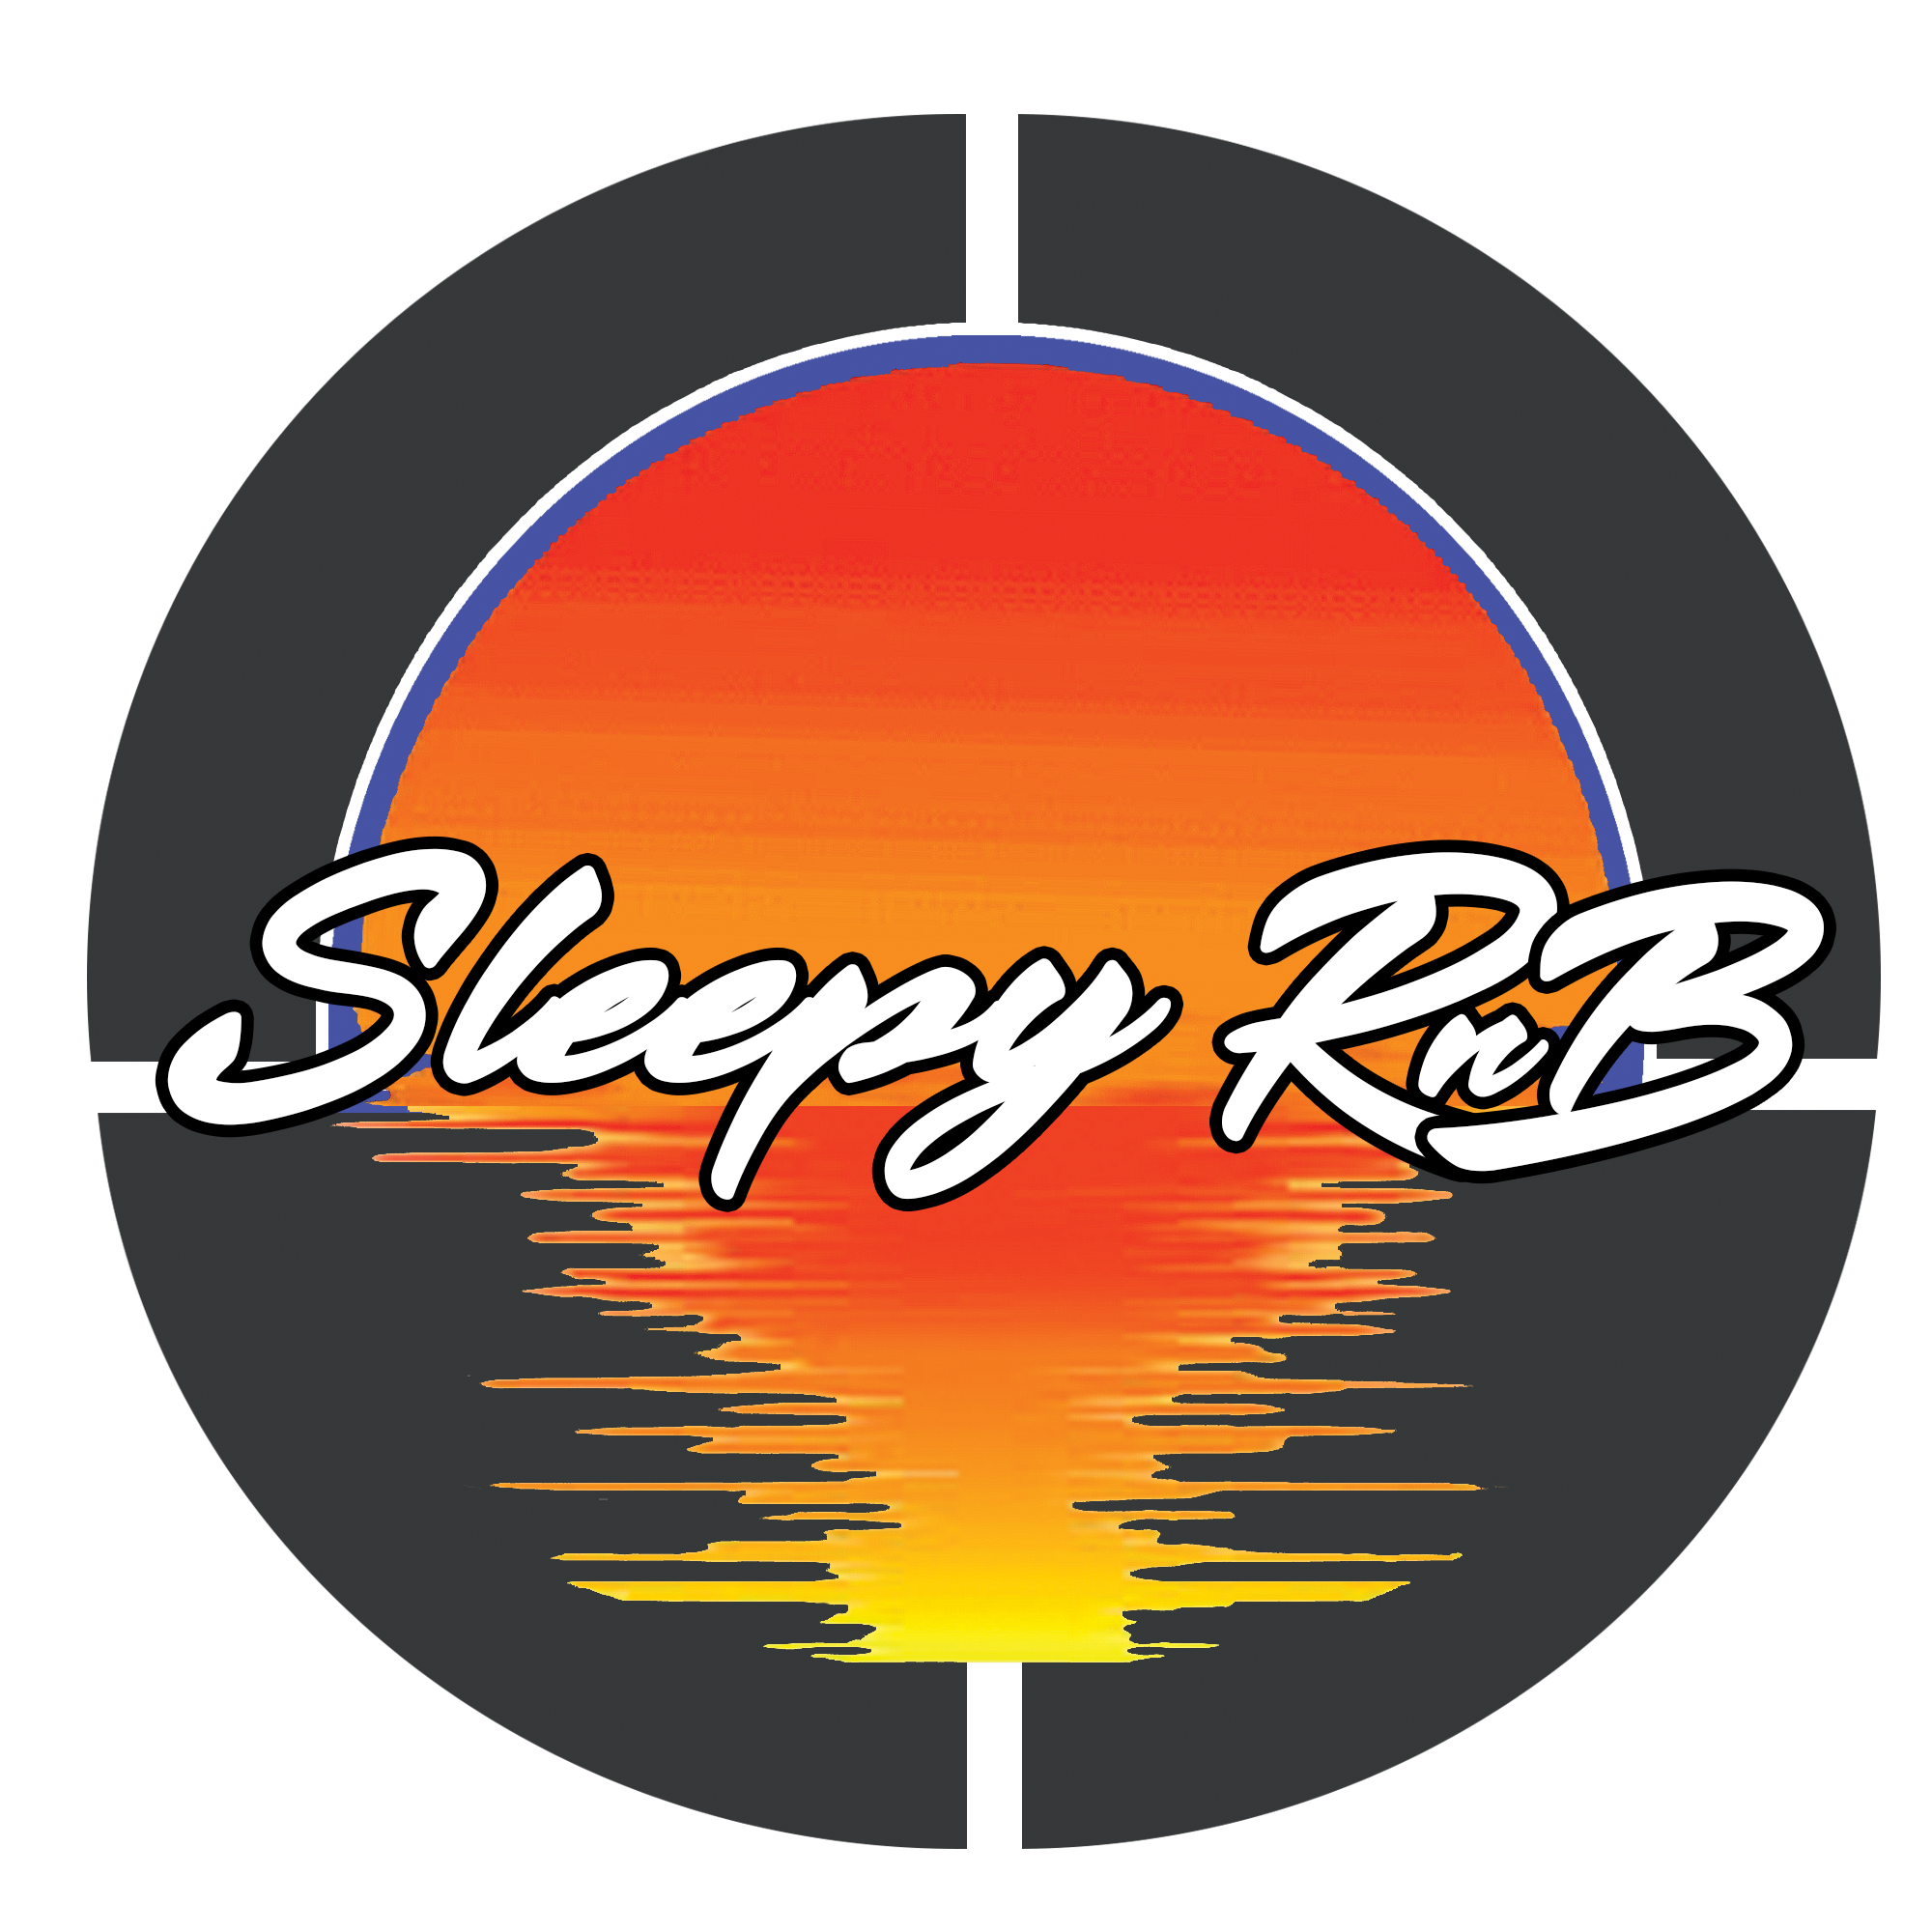 Sleepy RnB